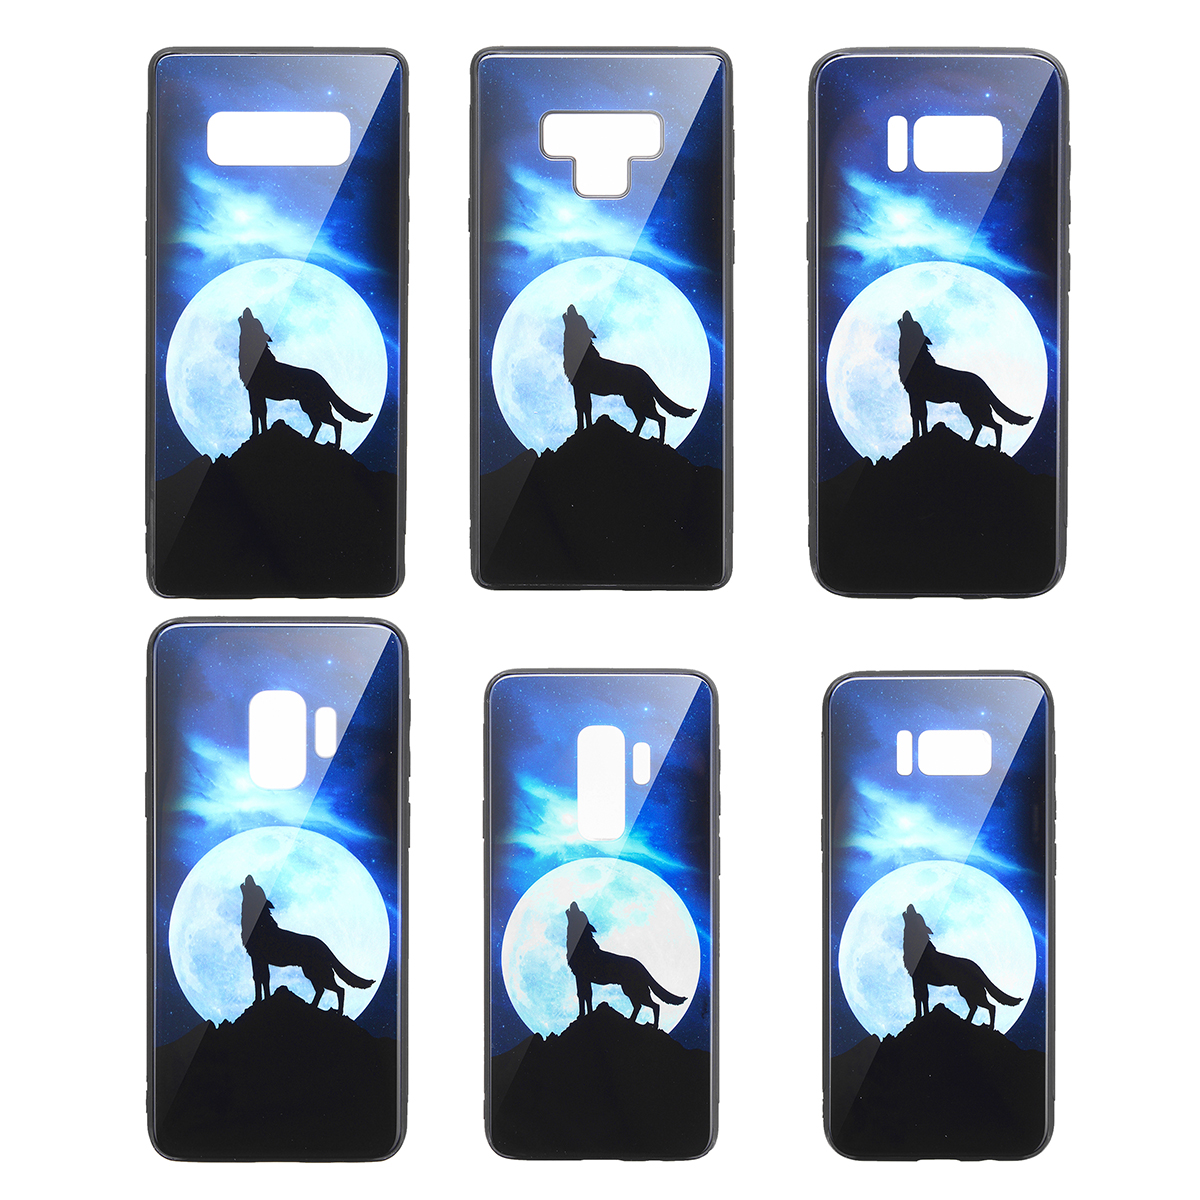 Bakeey Tempered Glass Protective Case For Samsung Galaxy S9/S9 Plus/S8/S8 Plus/Note 9/Note 8 Scratch Resistant Back Cover